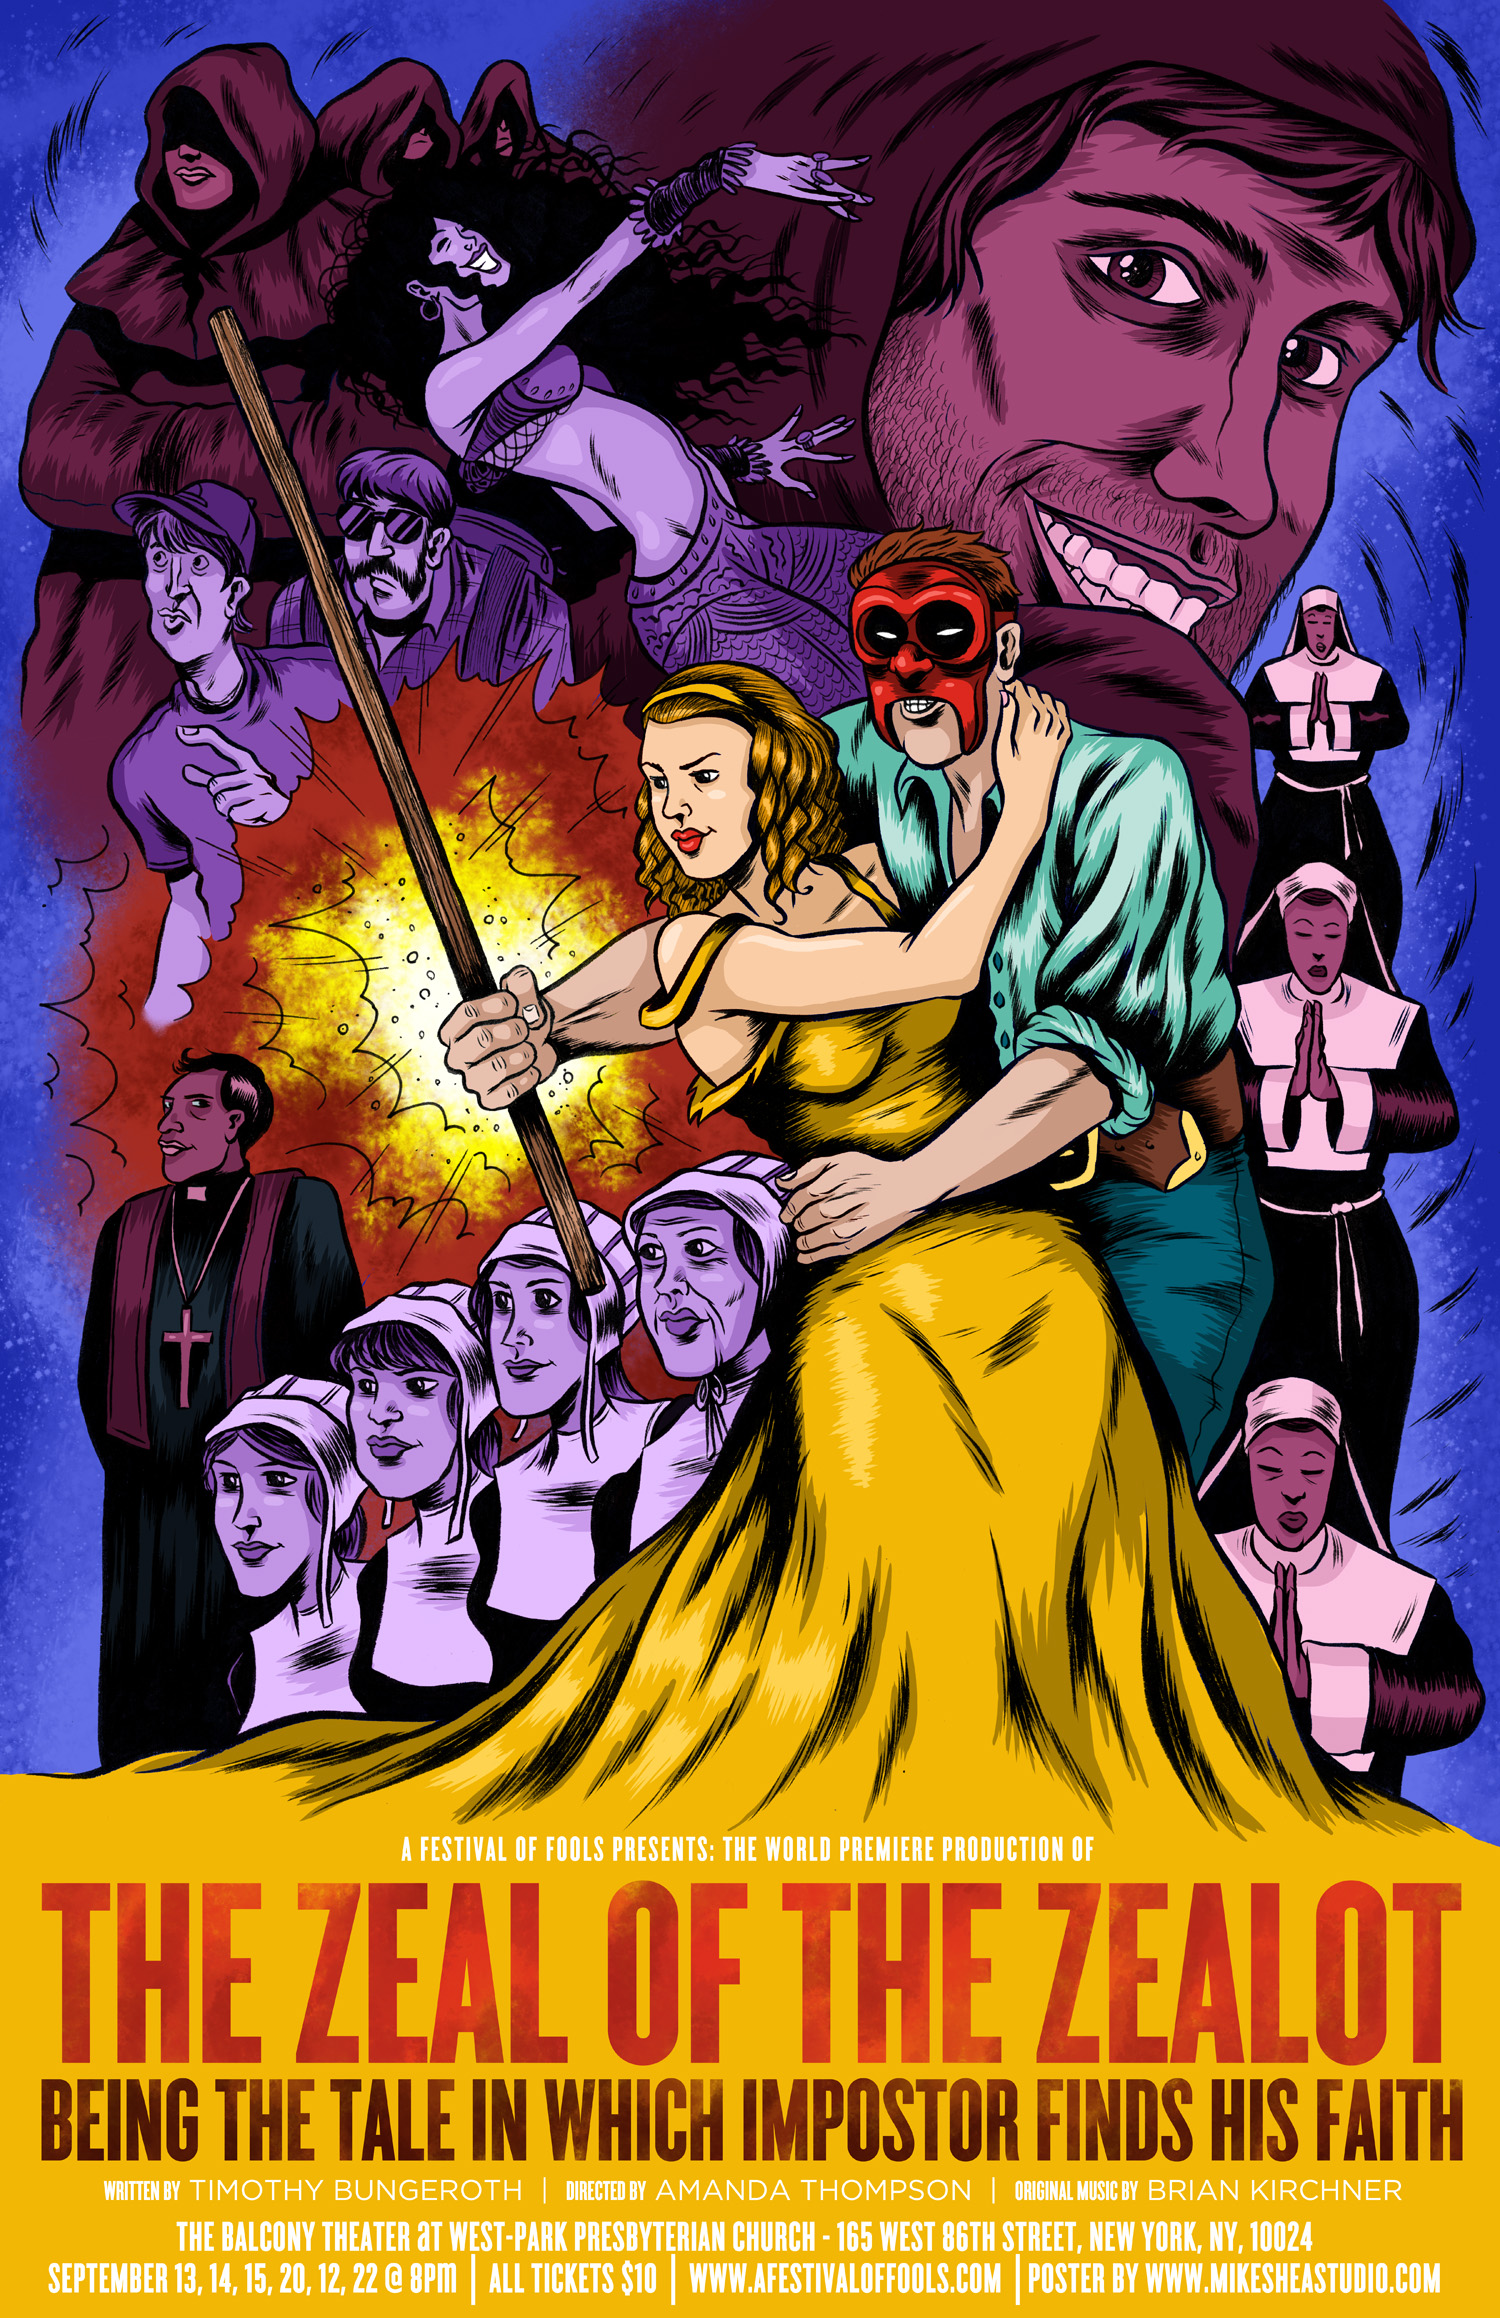 8-19-12 ZOZ poster colors LOW RES.jpg